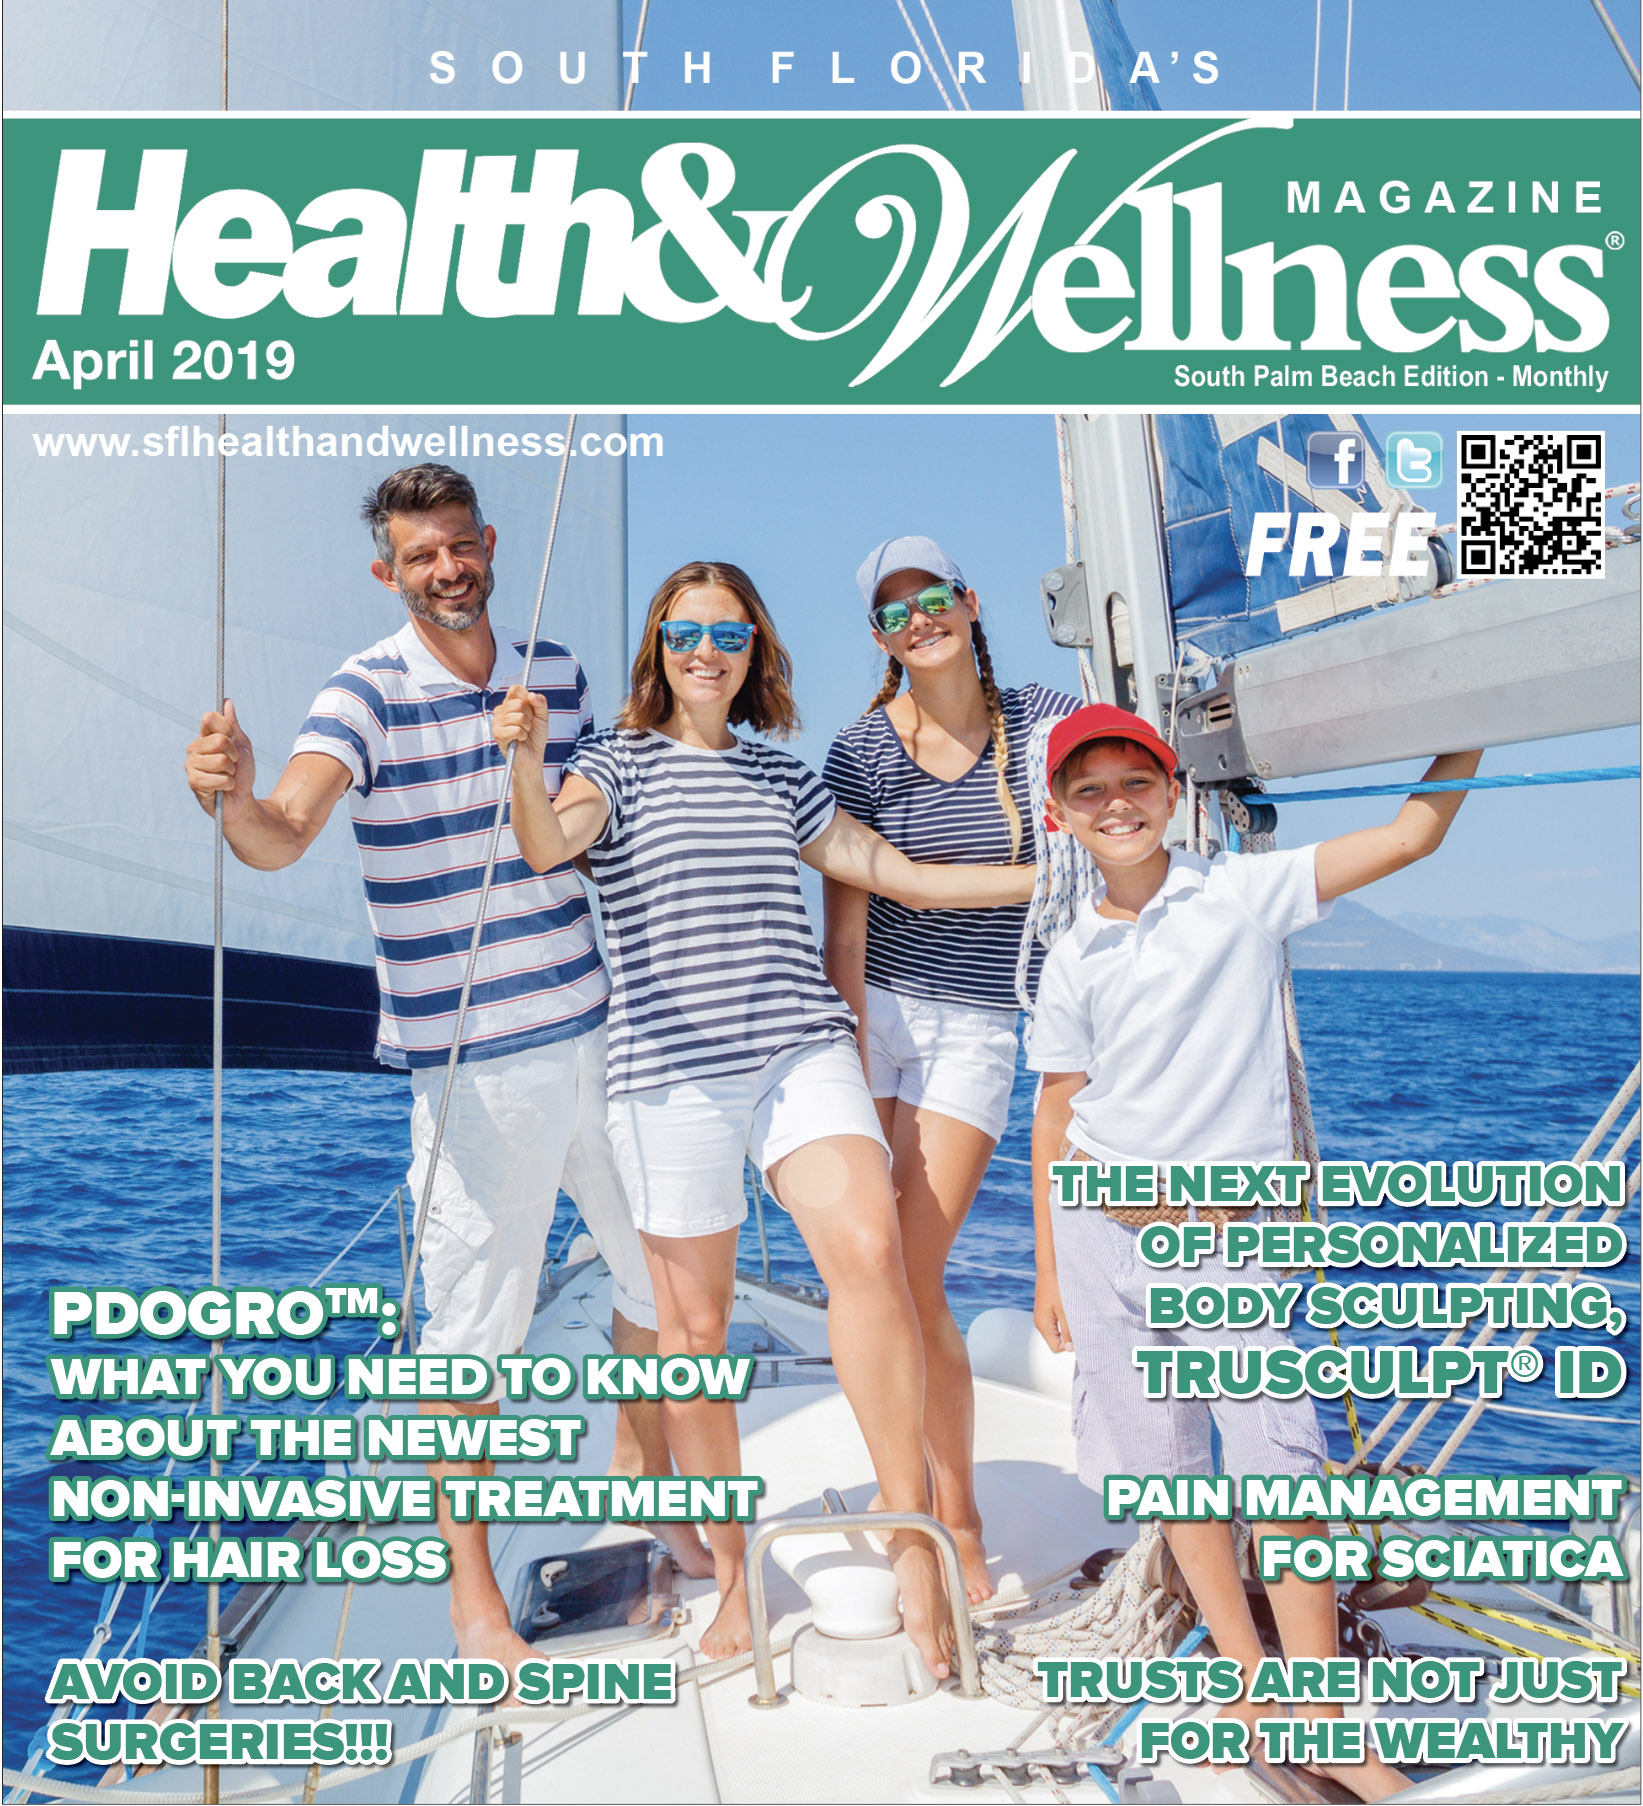 South Florida's Health and Wellness Magazine